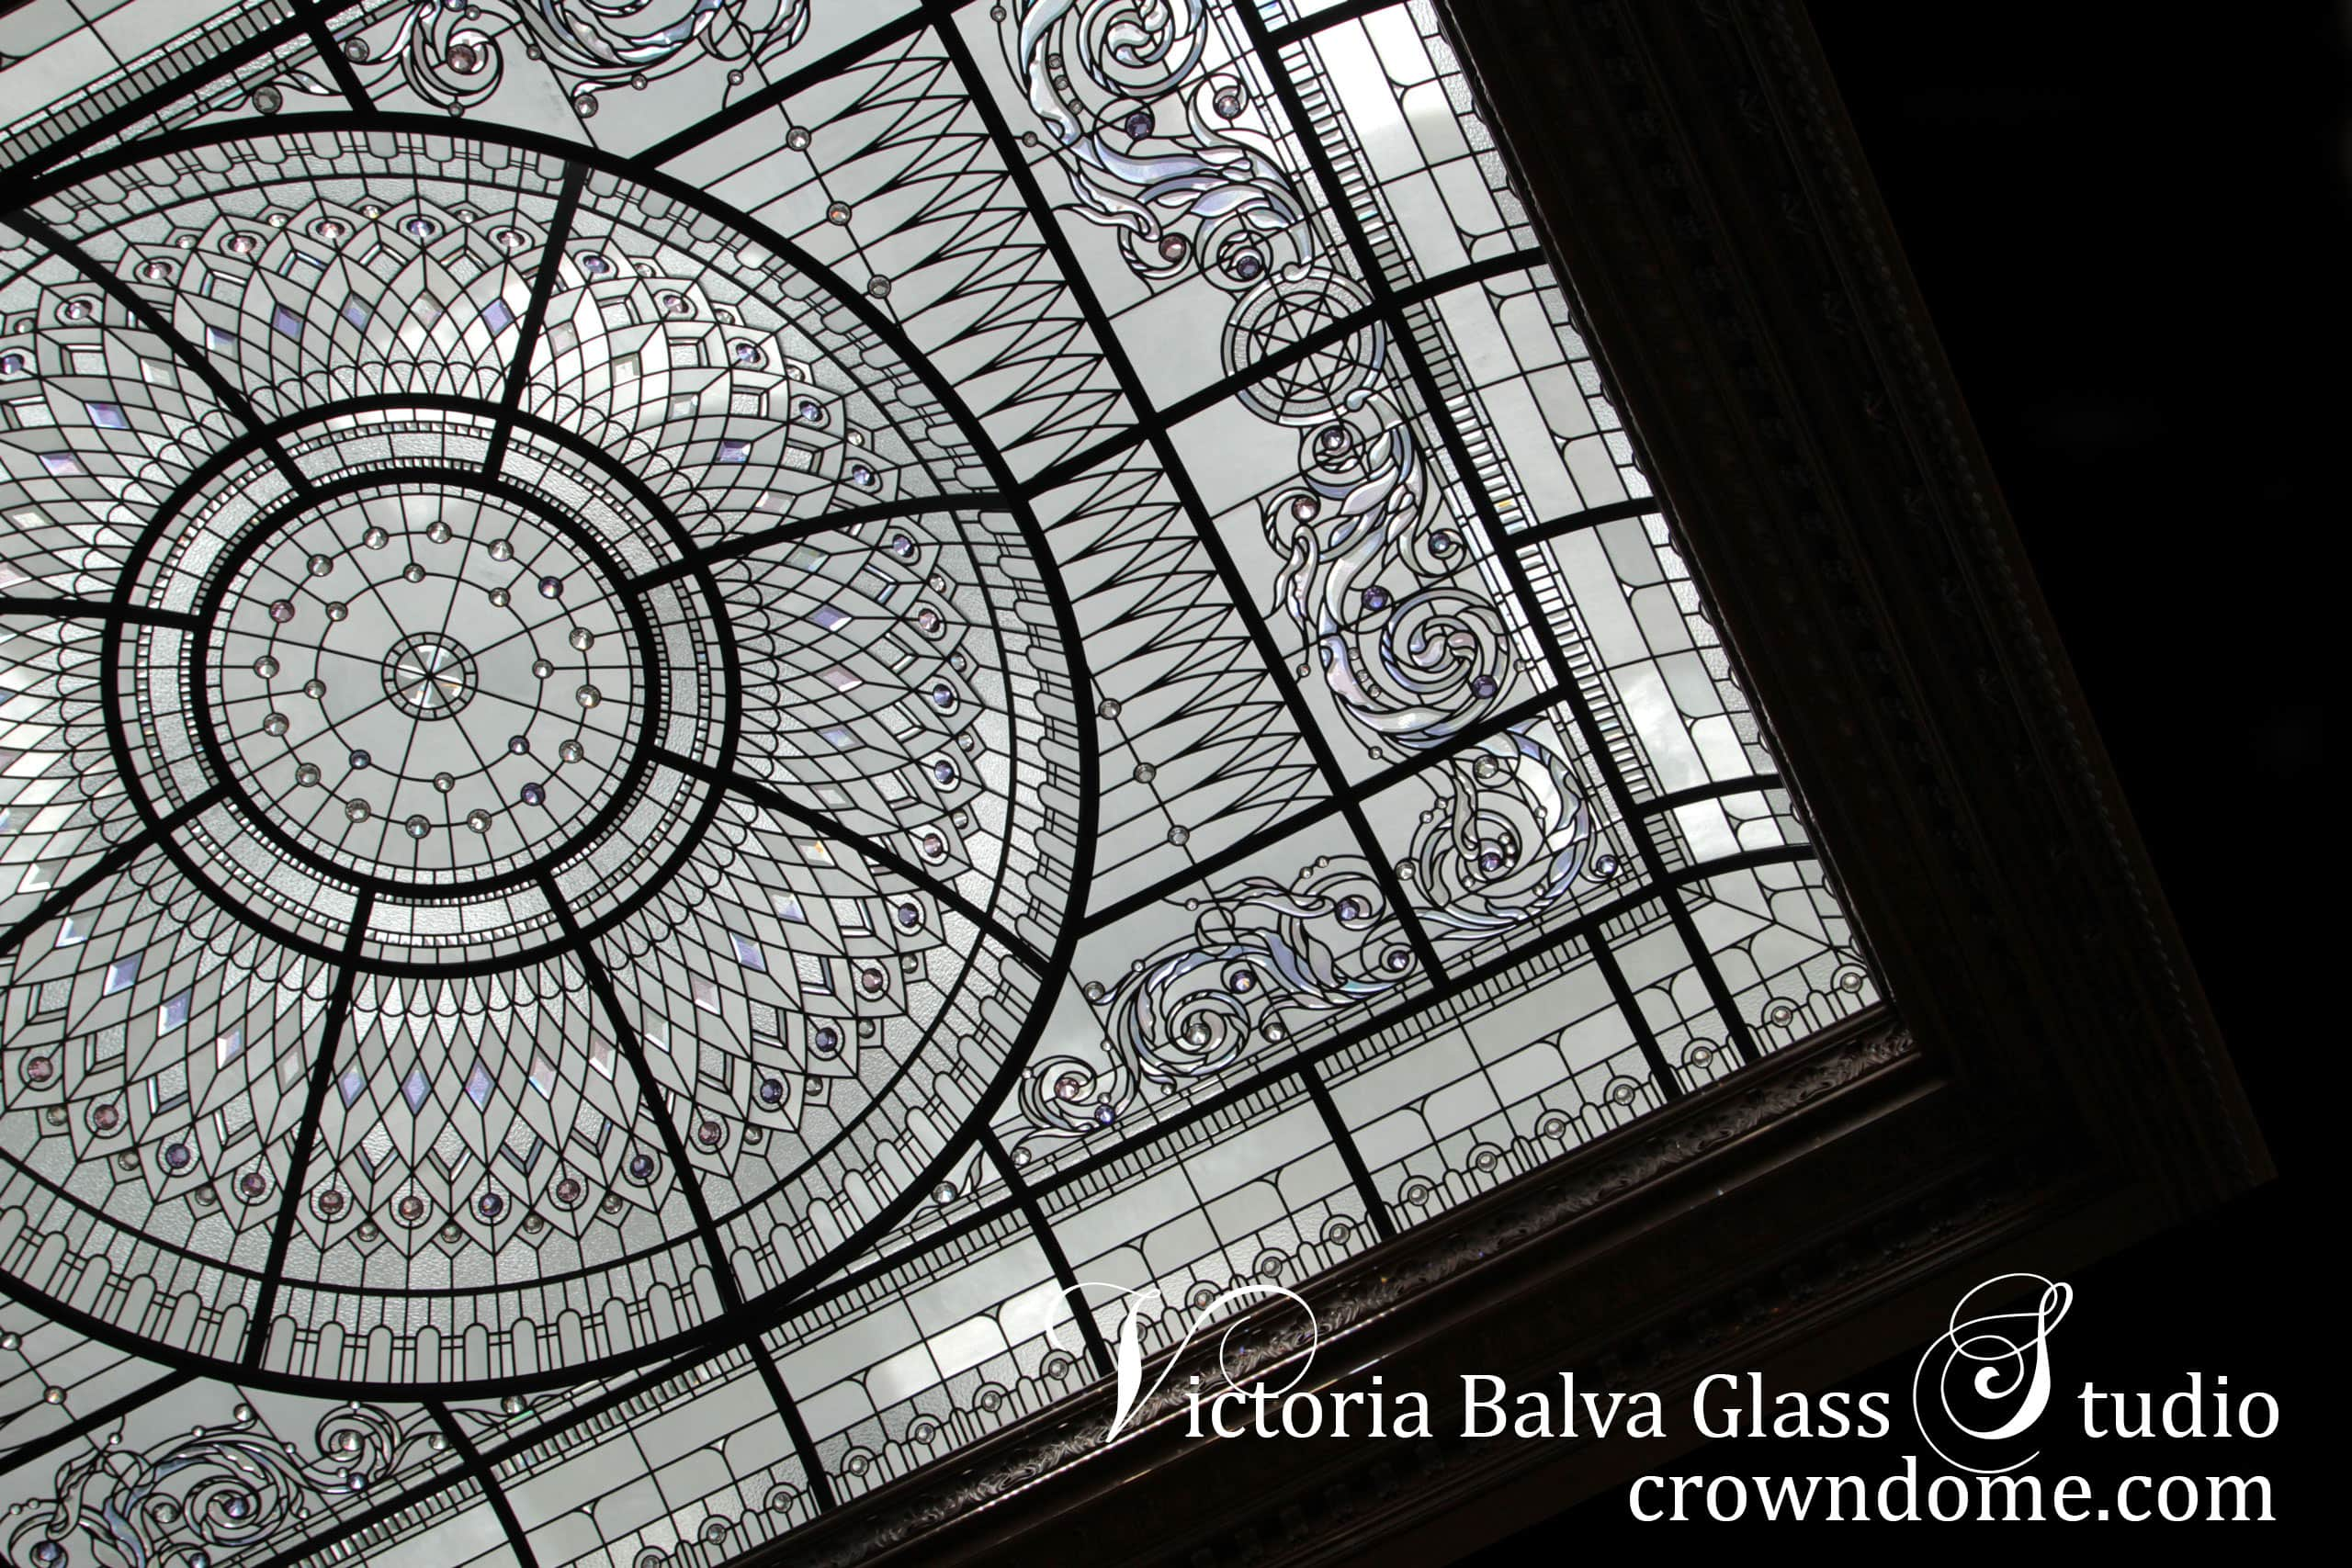 Large leaded glass domed skylight with crystal jewels and bevelled glass